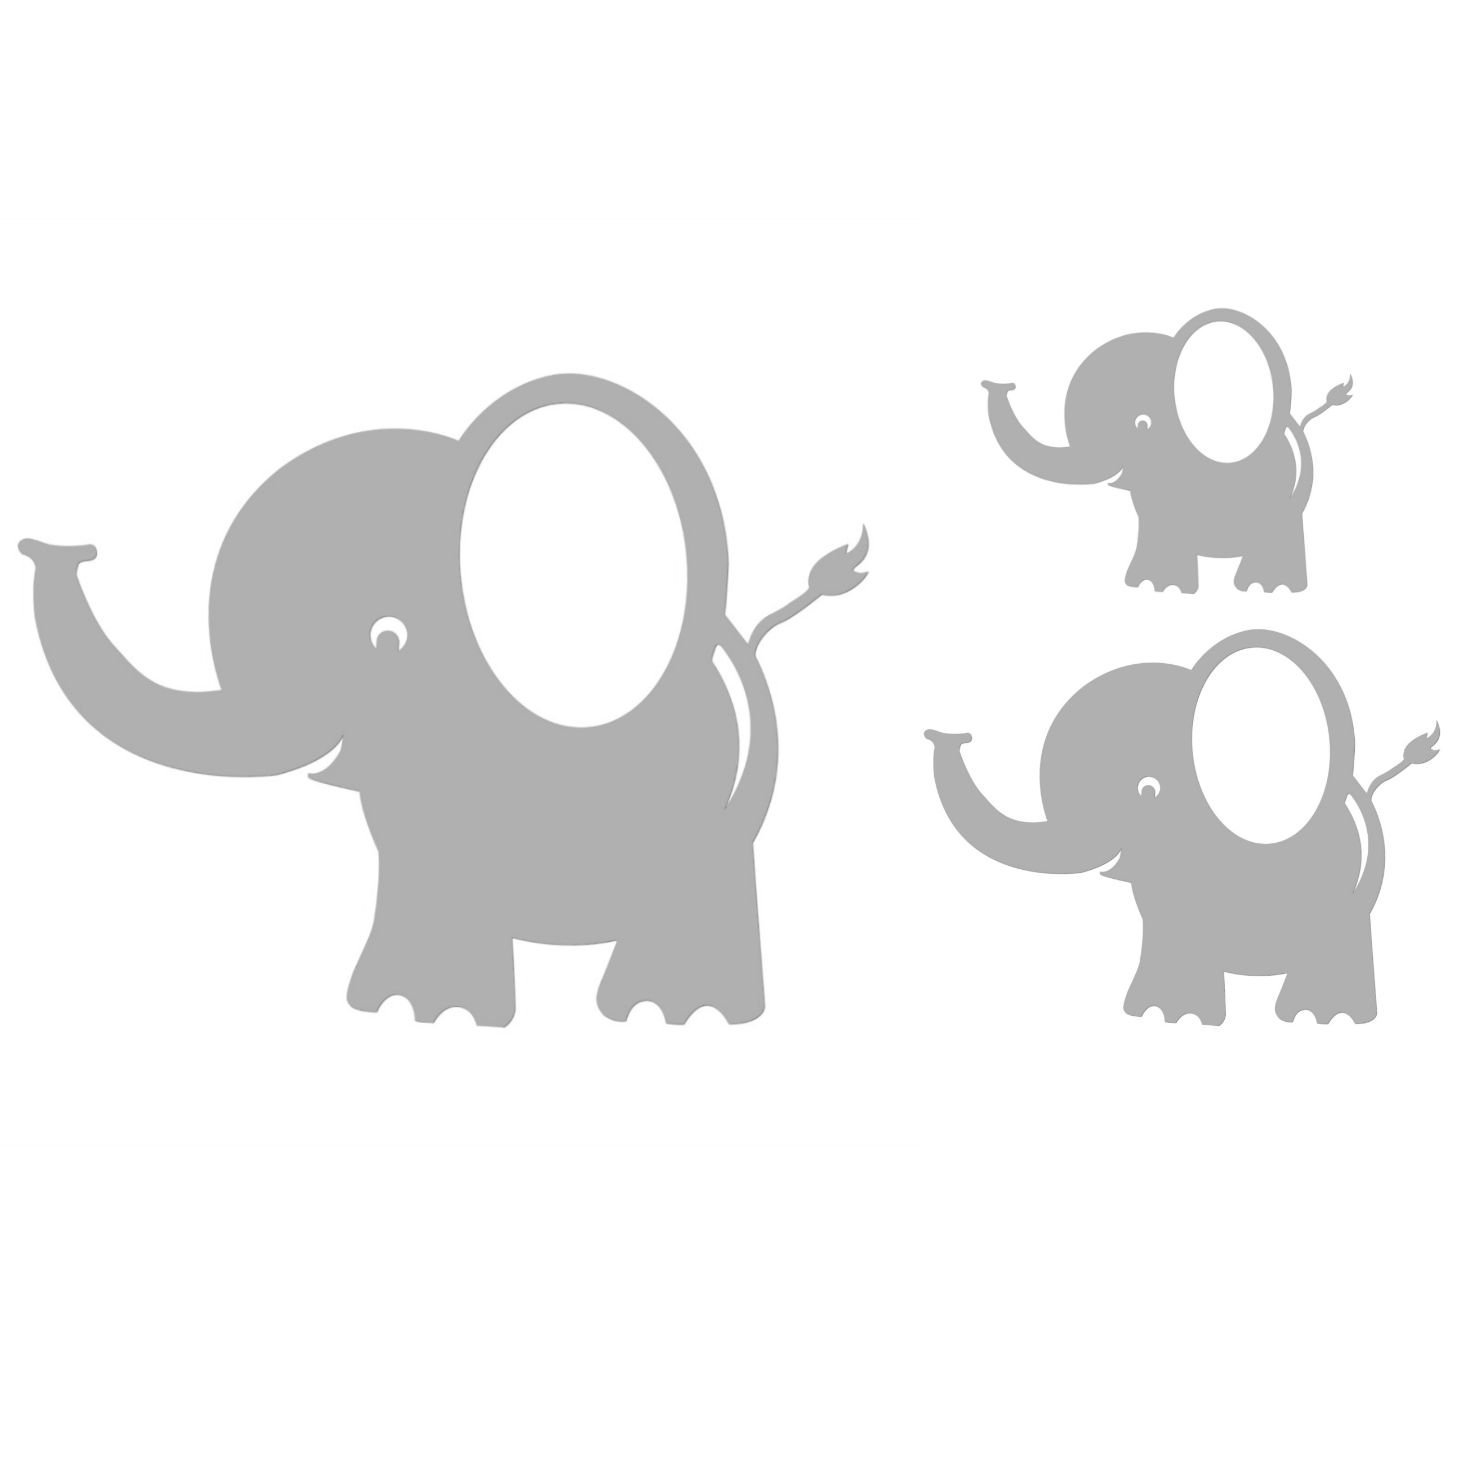 Us 5 38 23 Off Bobee Baby Elephant Wall Decals For Kids Room Decor Nursery Sticker Light Grey Pack Small In Stickers From Home